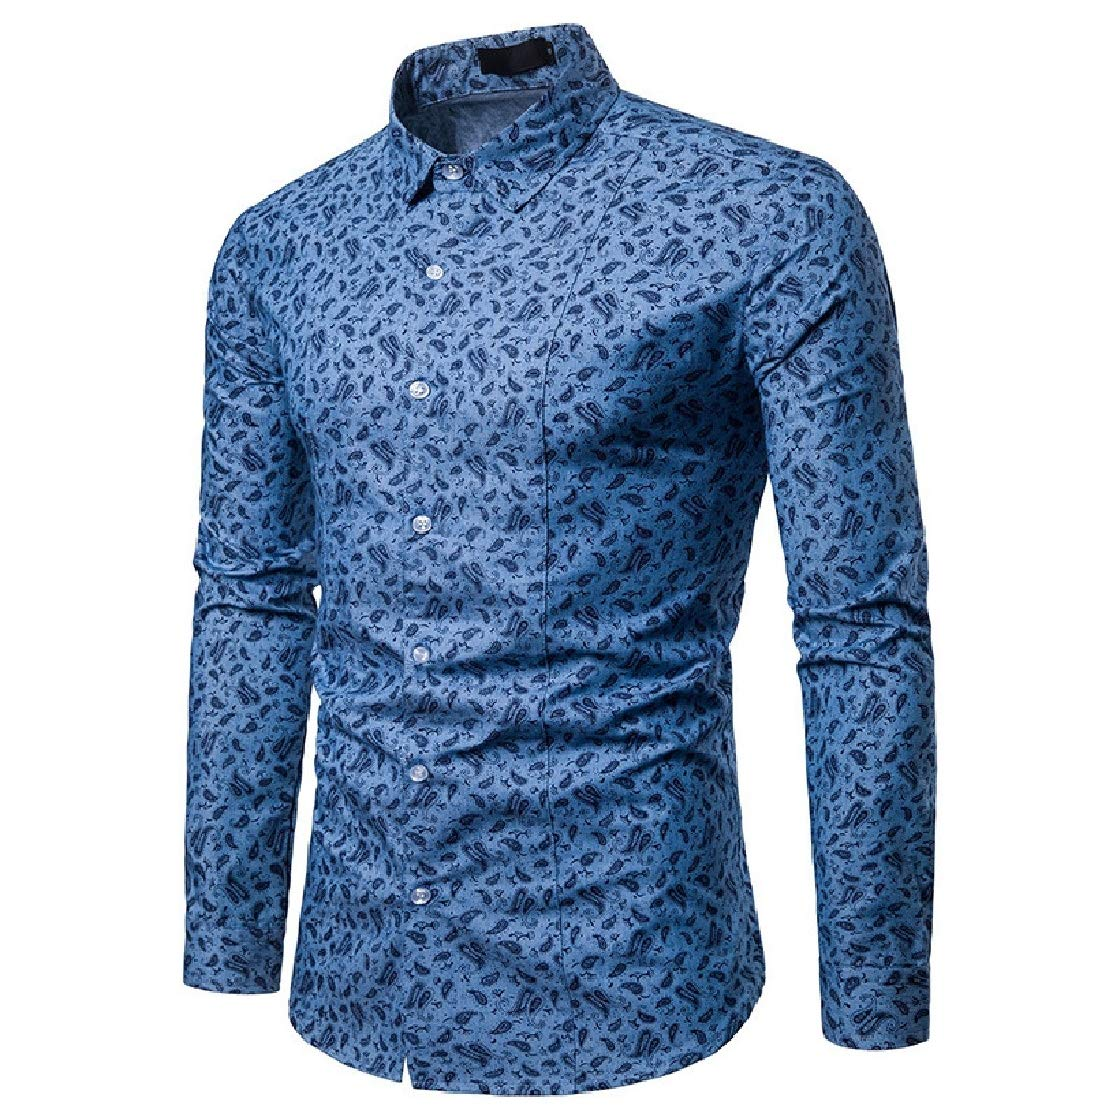 YUNY Mens Floral Long-Sleeve Plus-Size Trim-Fit Casual Autumn Western Shirt Light Blue M